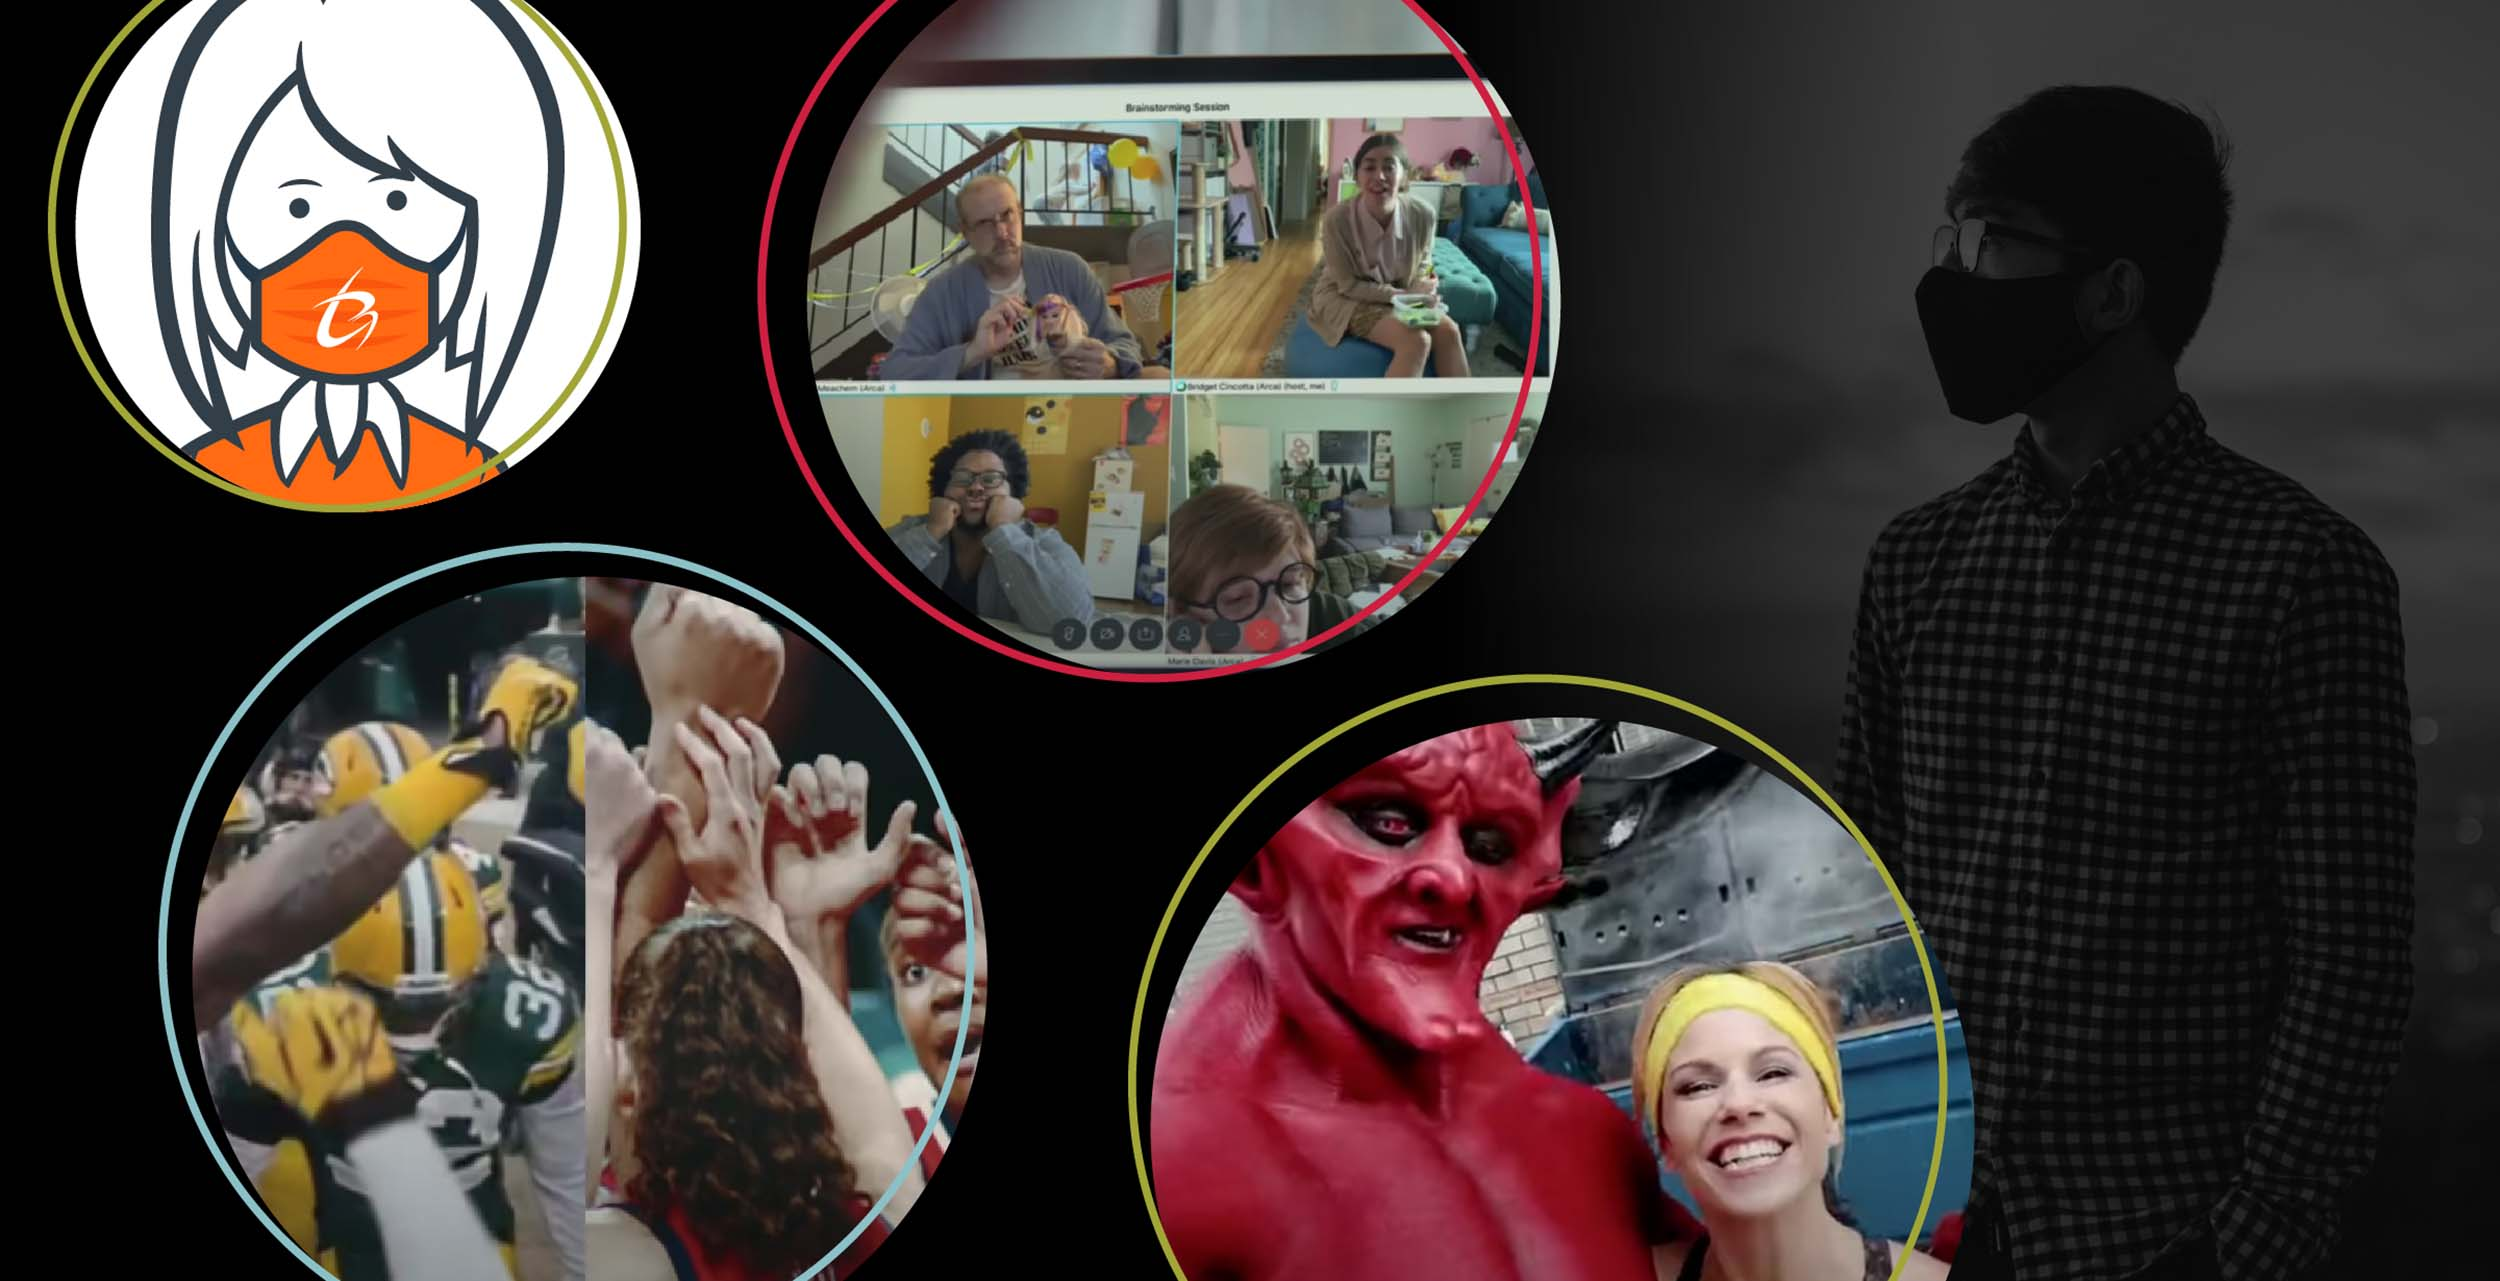 Various scenes of masks and video conferences as experienced in 2020